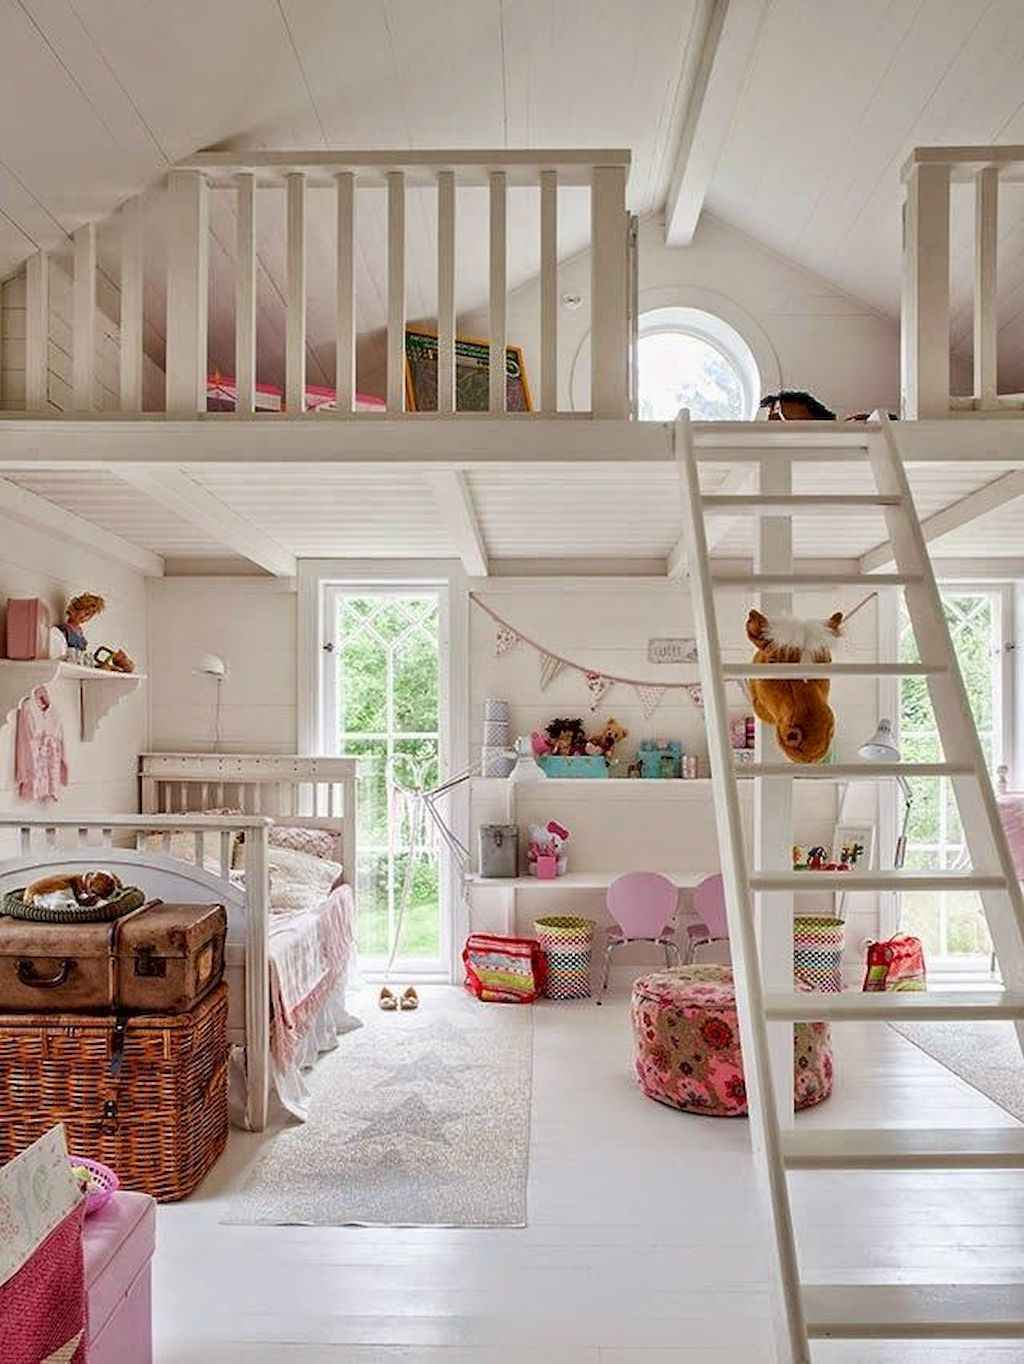 Simply ideas bedroom for kids (23)